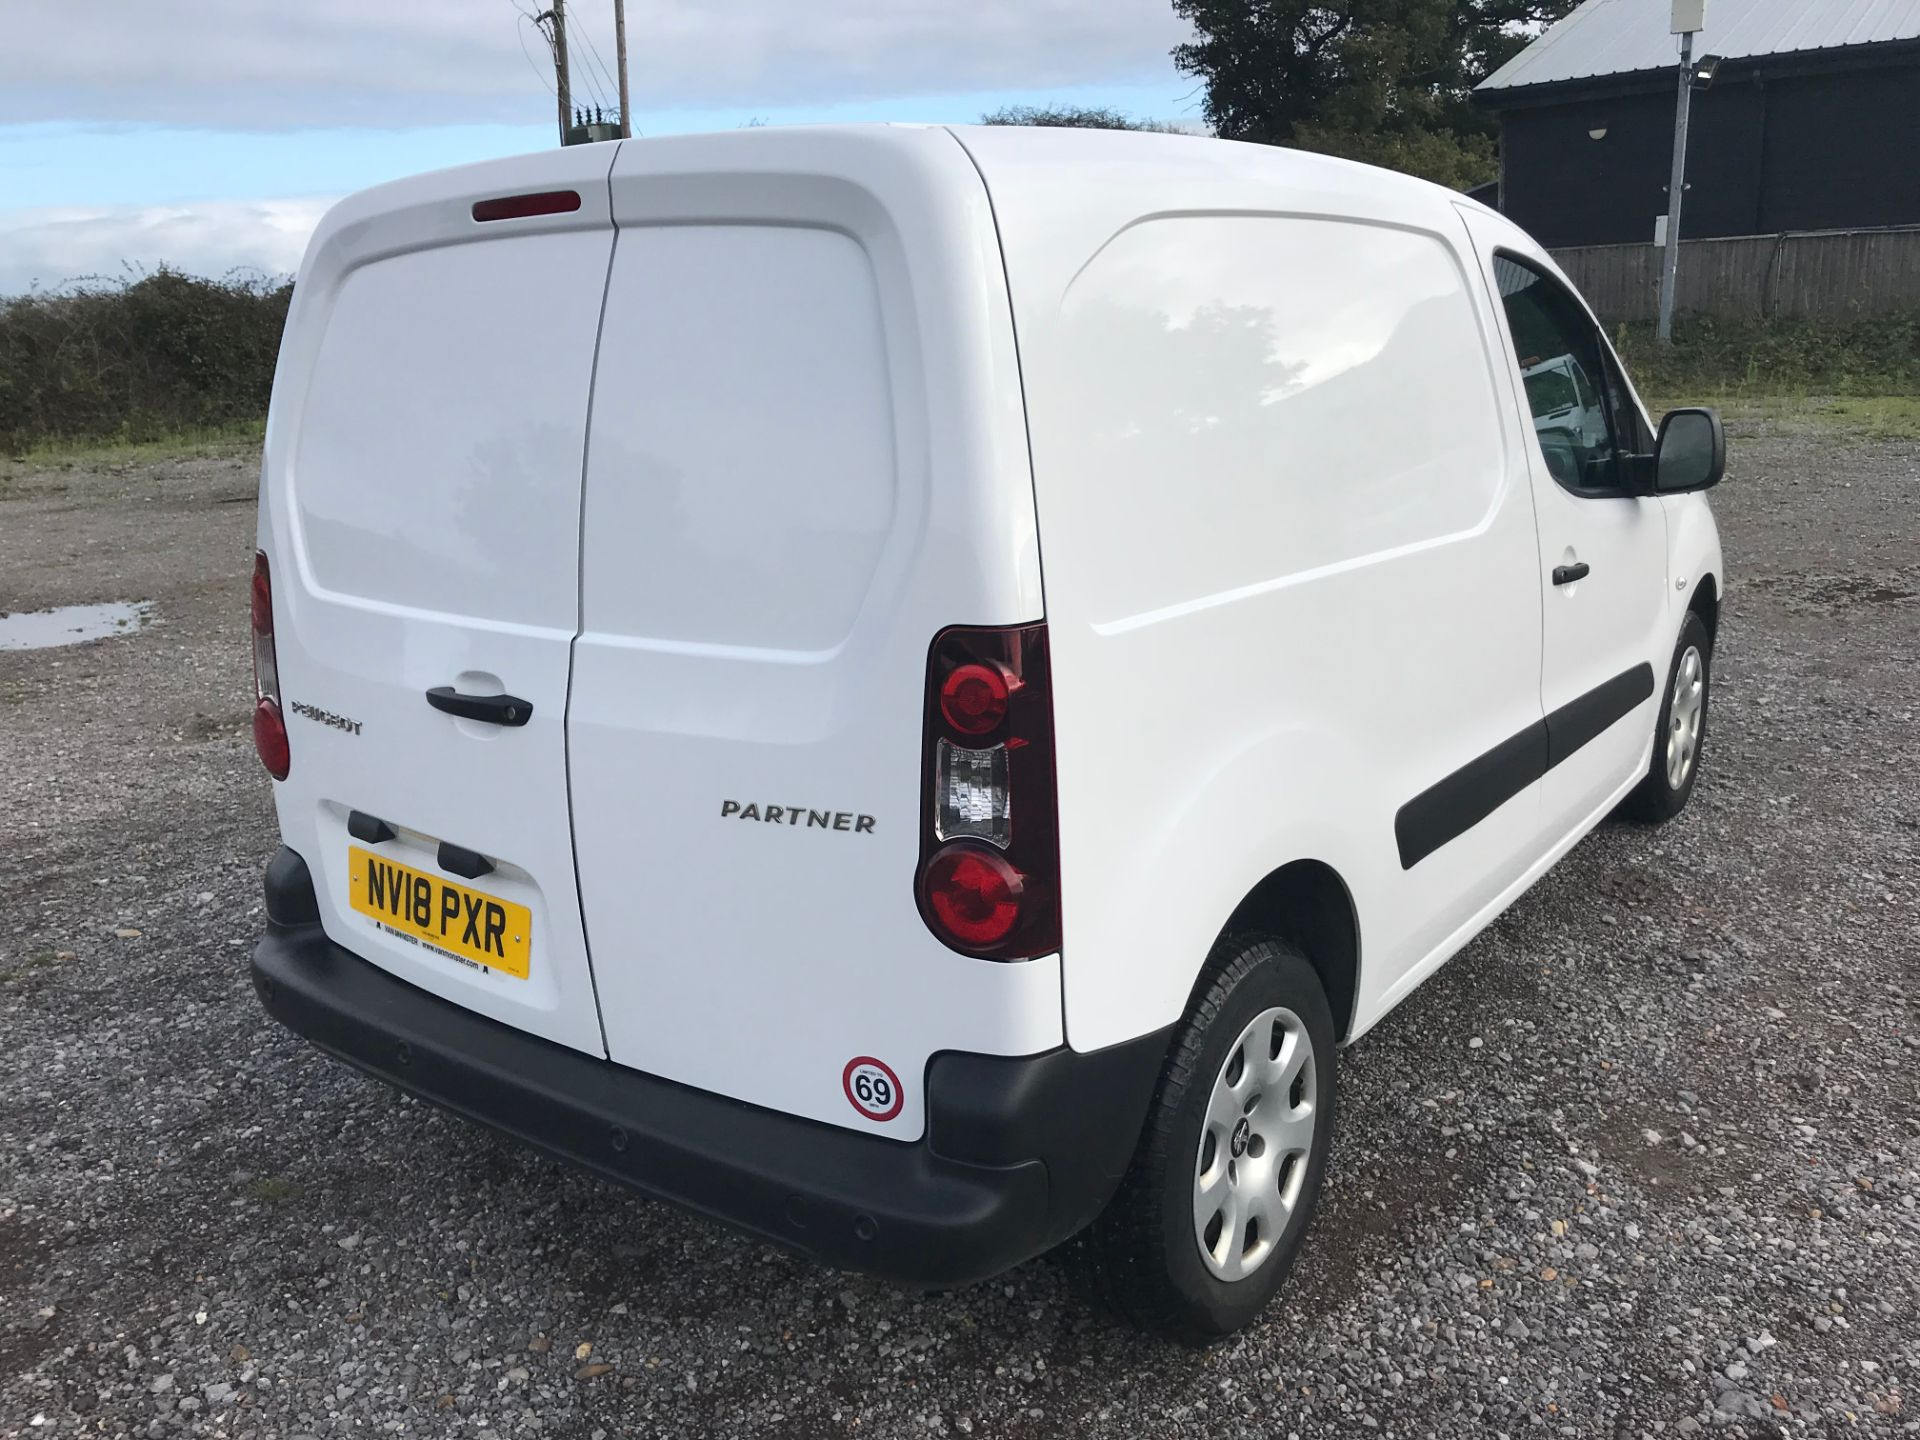 2018 Peugeot Partner 850 1.6 Bluehdi 100 Professional Van [Non Ss]*Restricted to 69MPH* (NV18PXR) Image 4